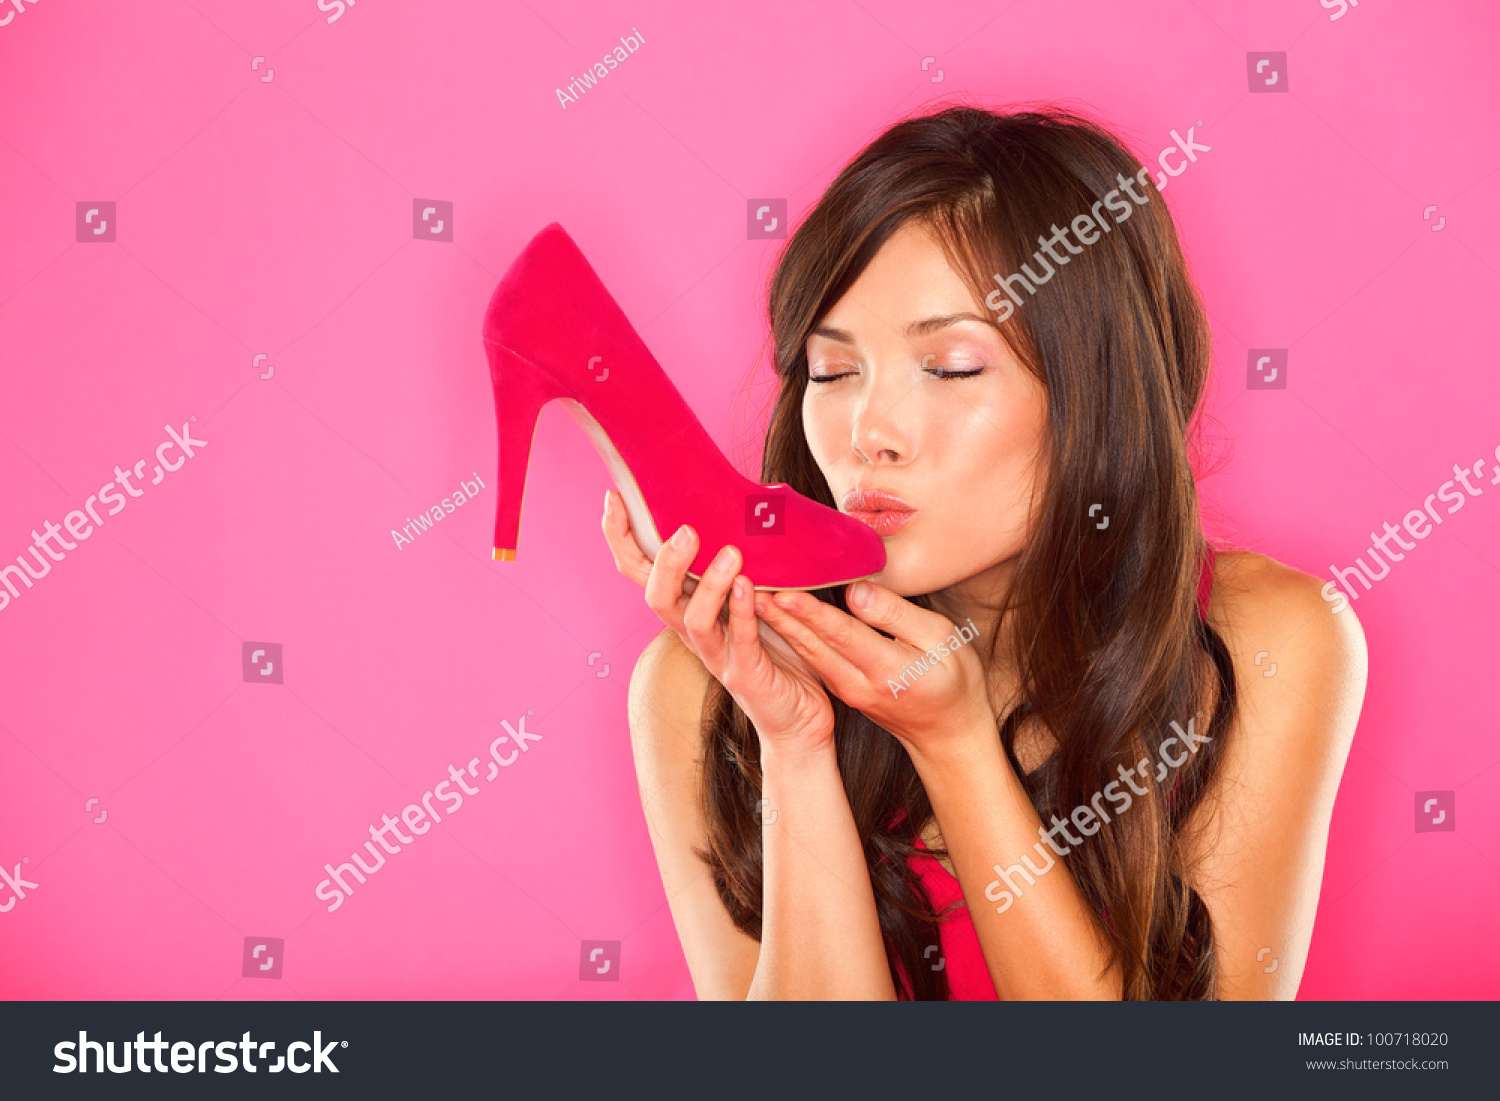 Girl who loves shoes dating